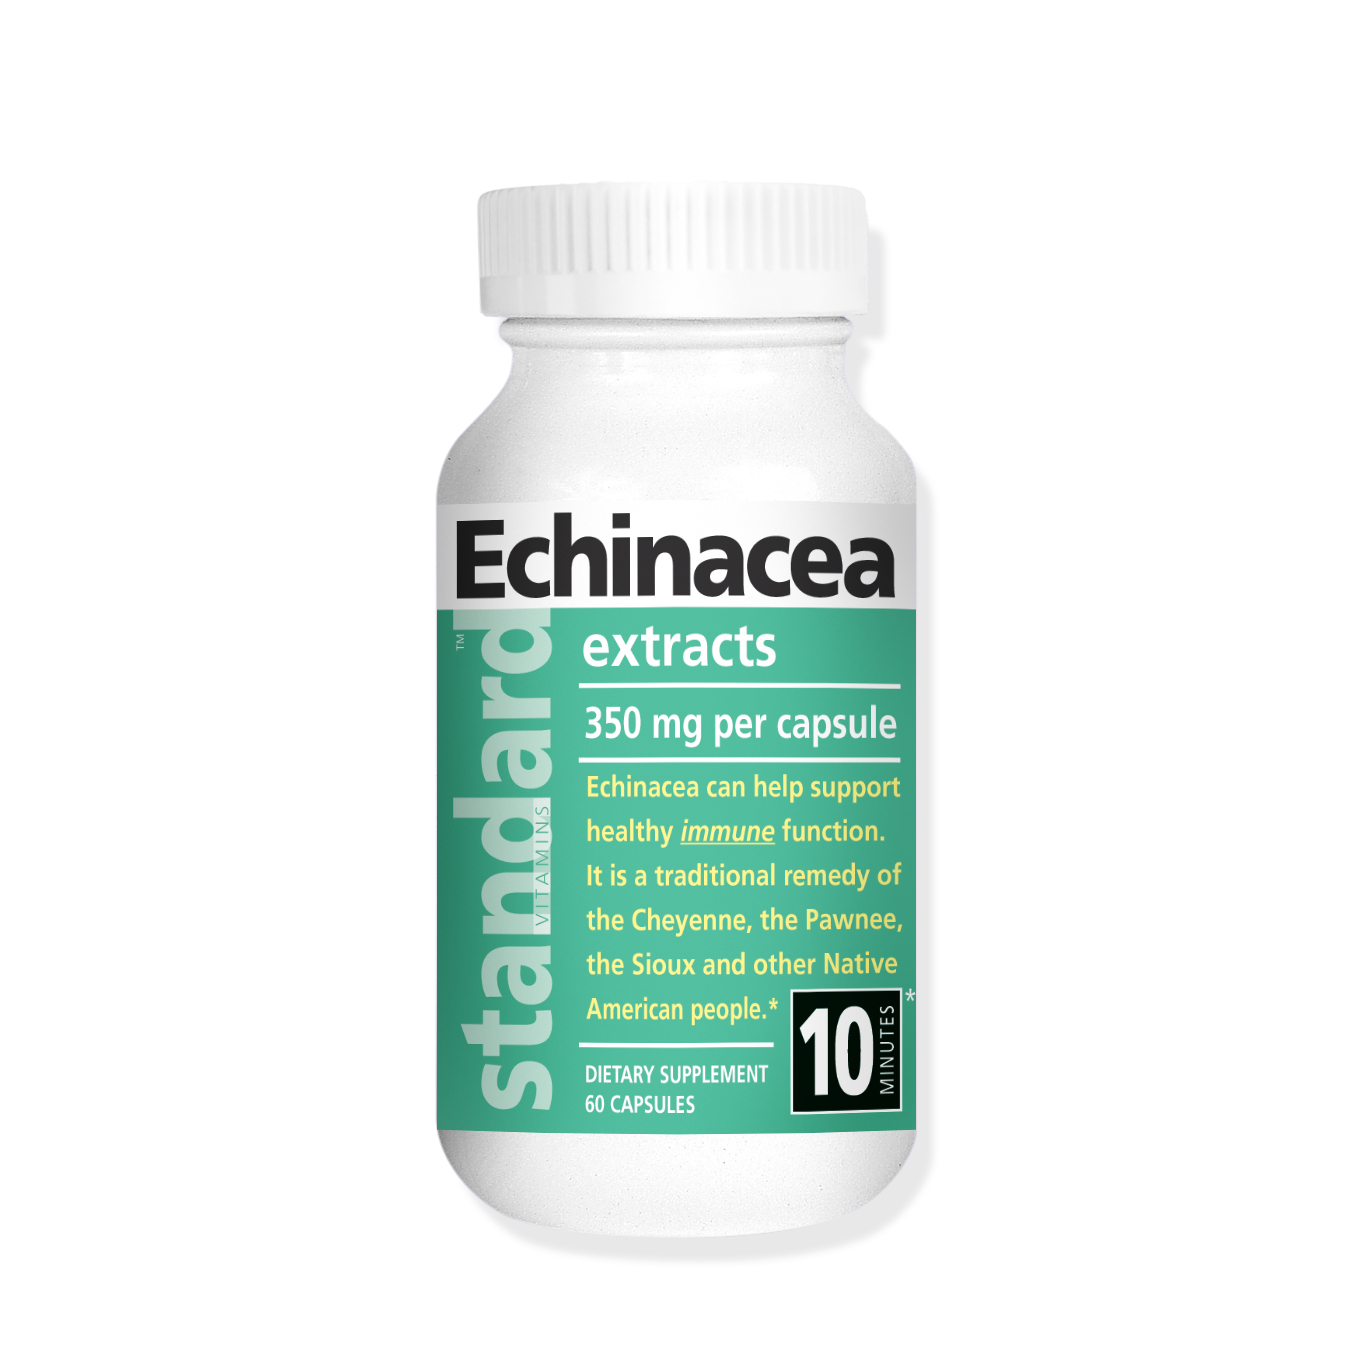 echinacea bottle main image